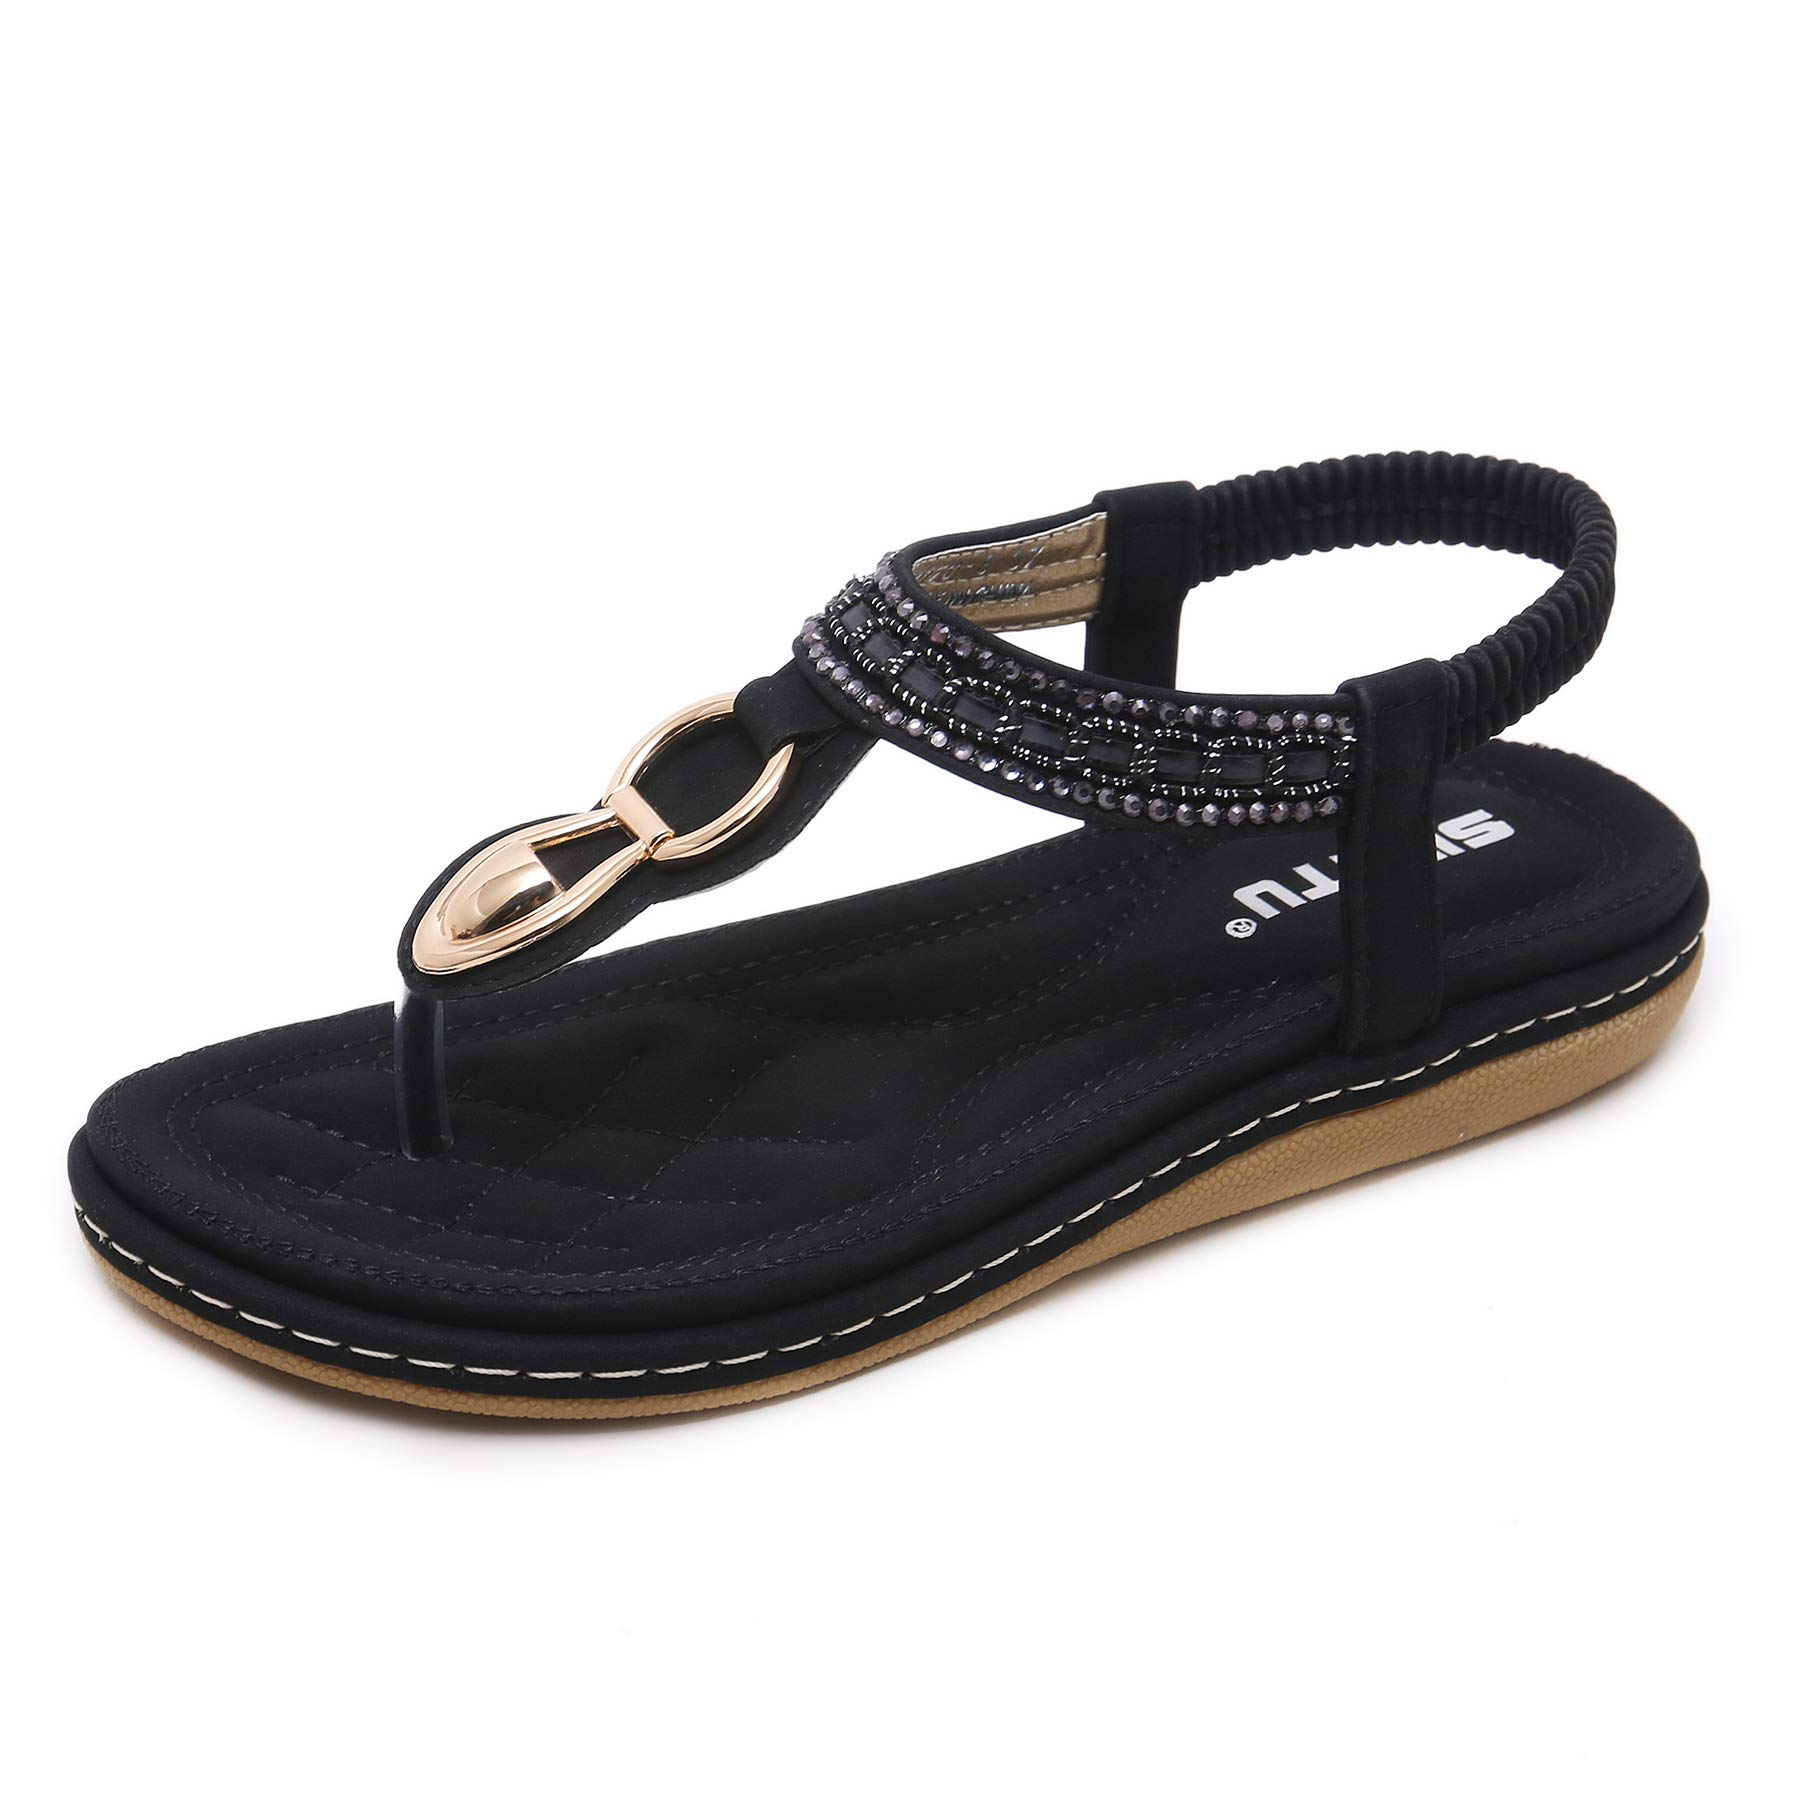 Women's Flat Sandals, Black Plus Size T-Strap Thongs Glitter Rhinestone Flip Flops Comfy Shoes for Homecoming Dressy Casual Jeans Beach Vacation, Back to School Evening Party, True to Size Footwear